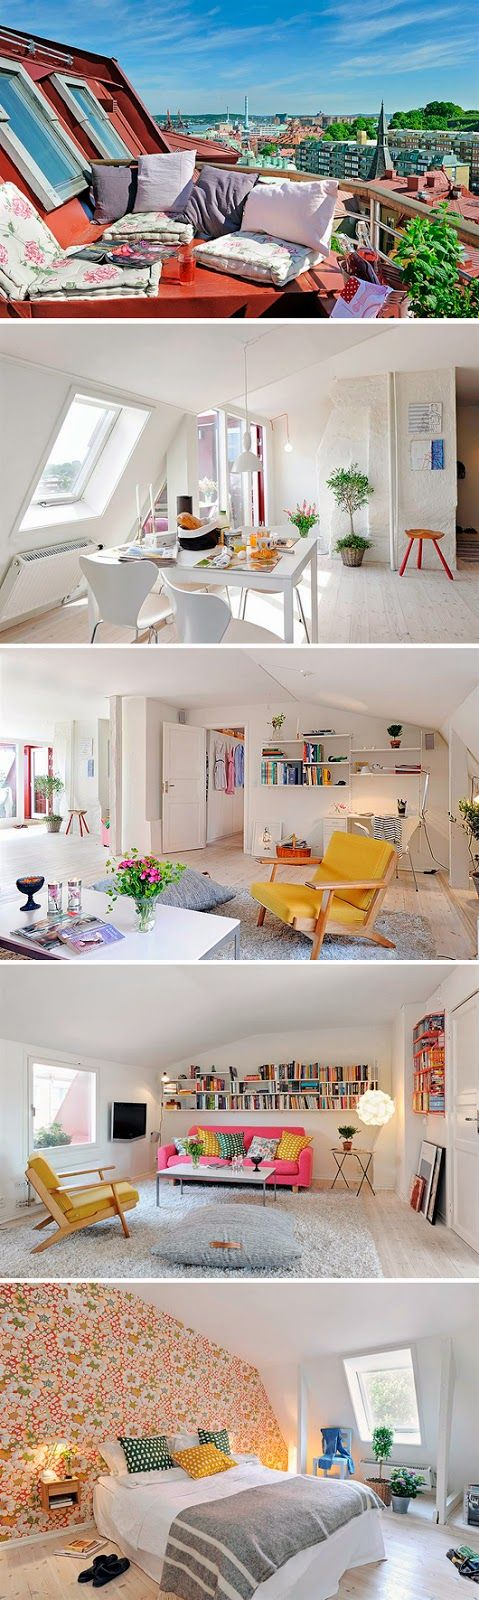 The Lovely Side: Get the Look: Crisp Swedish Style with White, Hot Pink, & Mustard Yellow